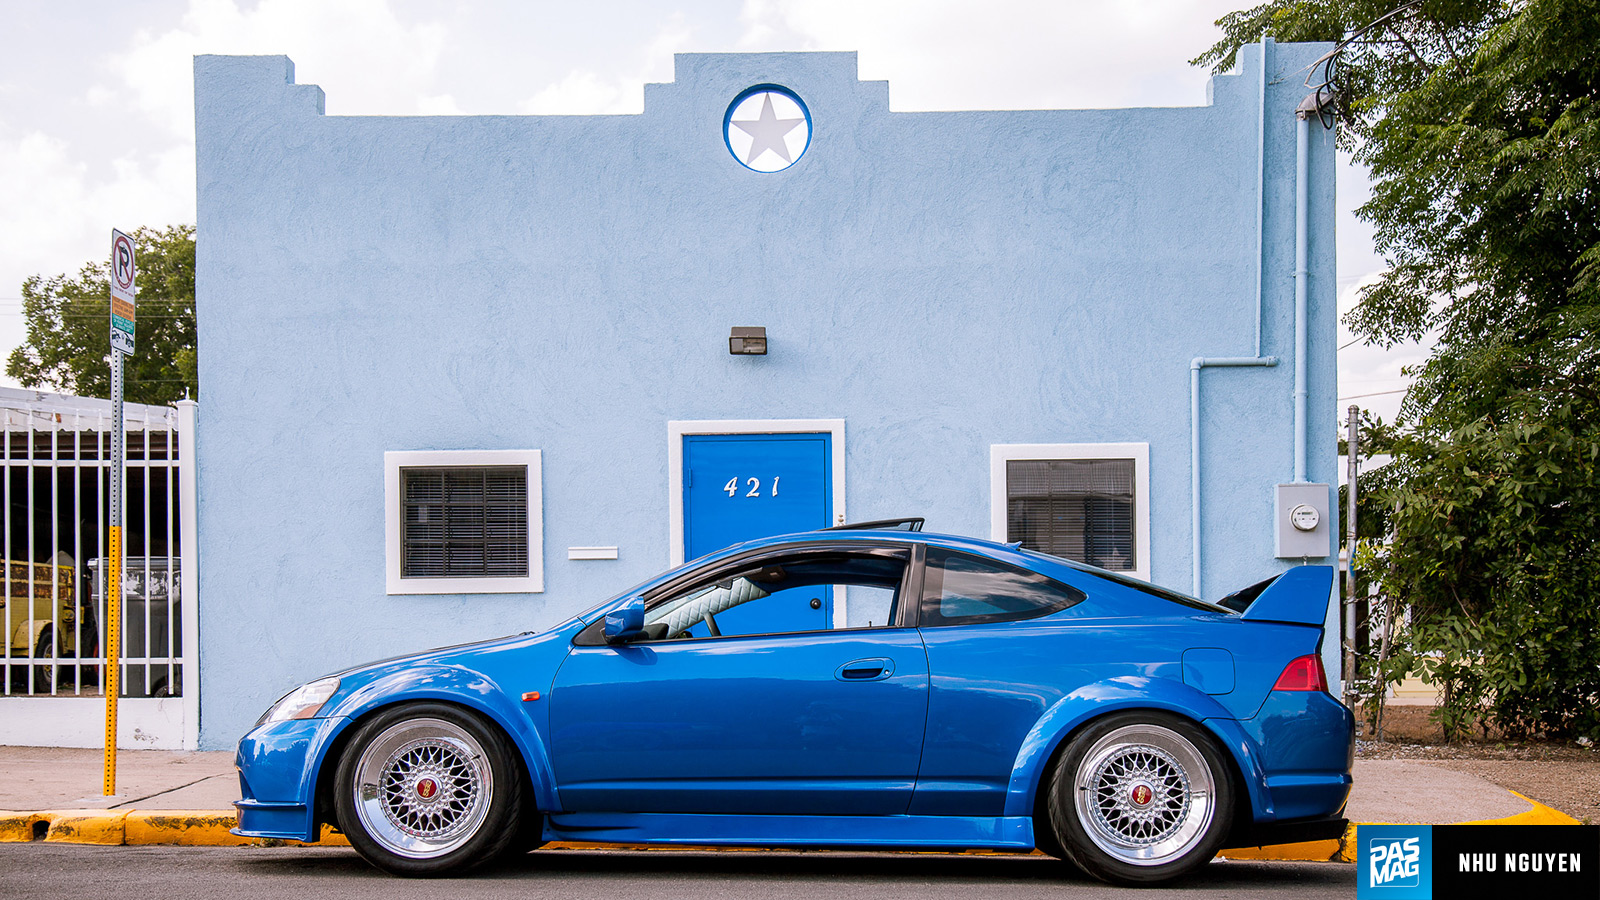 17 Luis Torres 2003 Acura RSX Type S PASMAG TBGLIVE